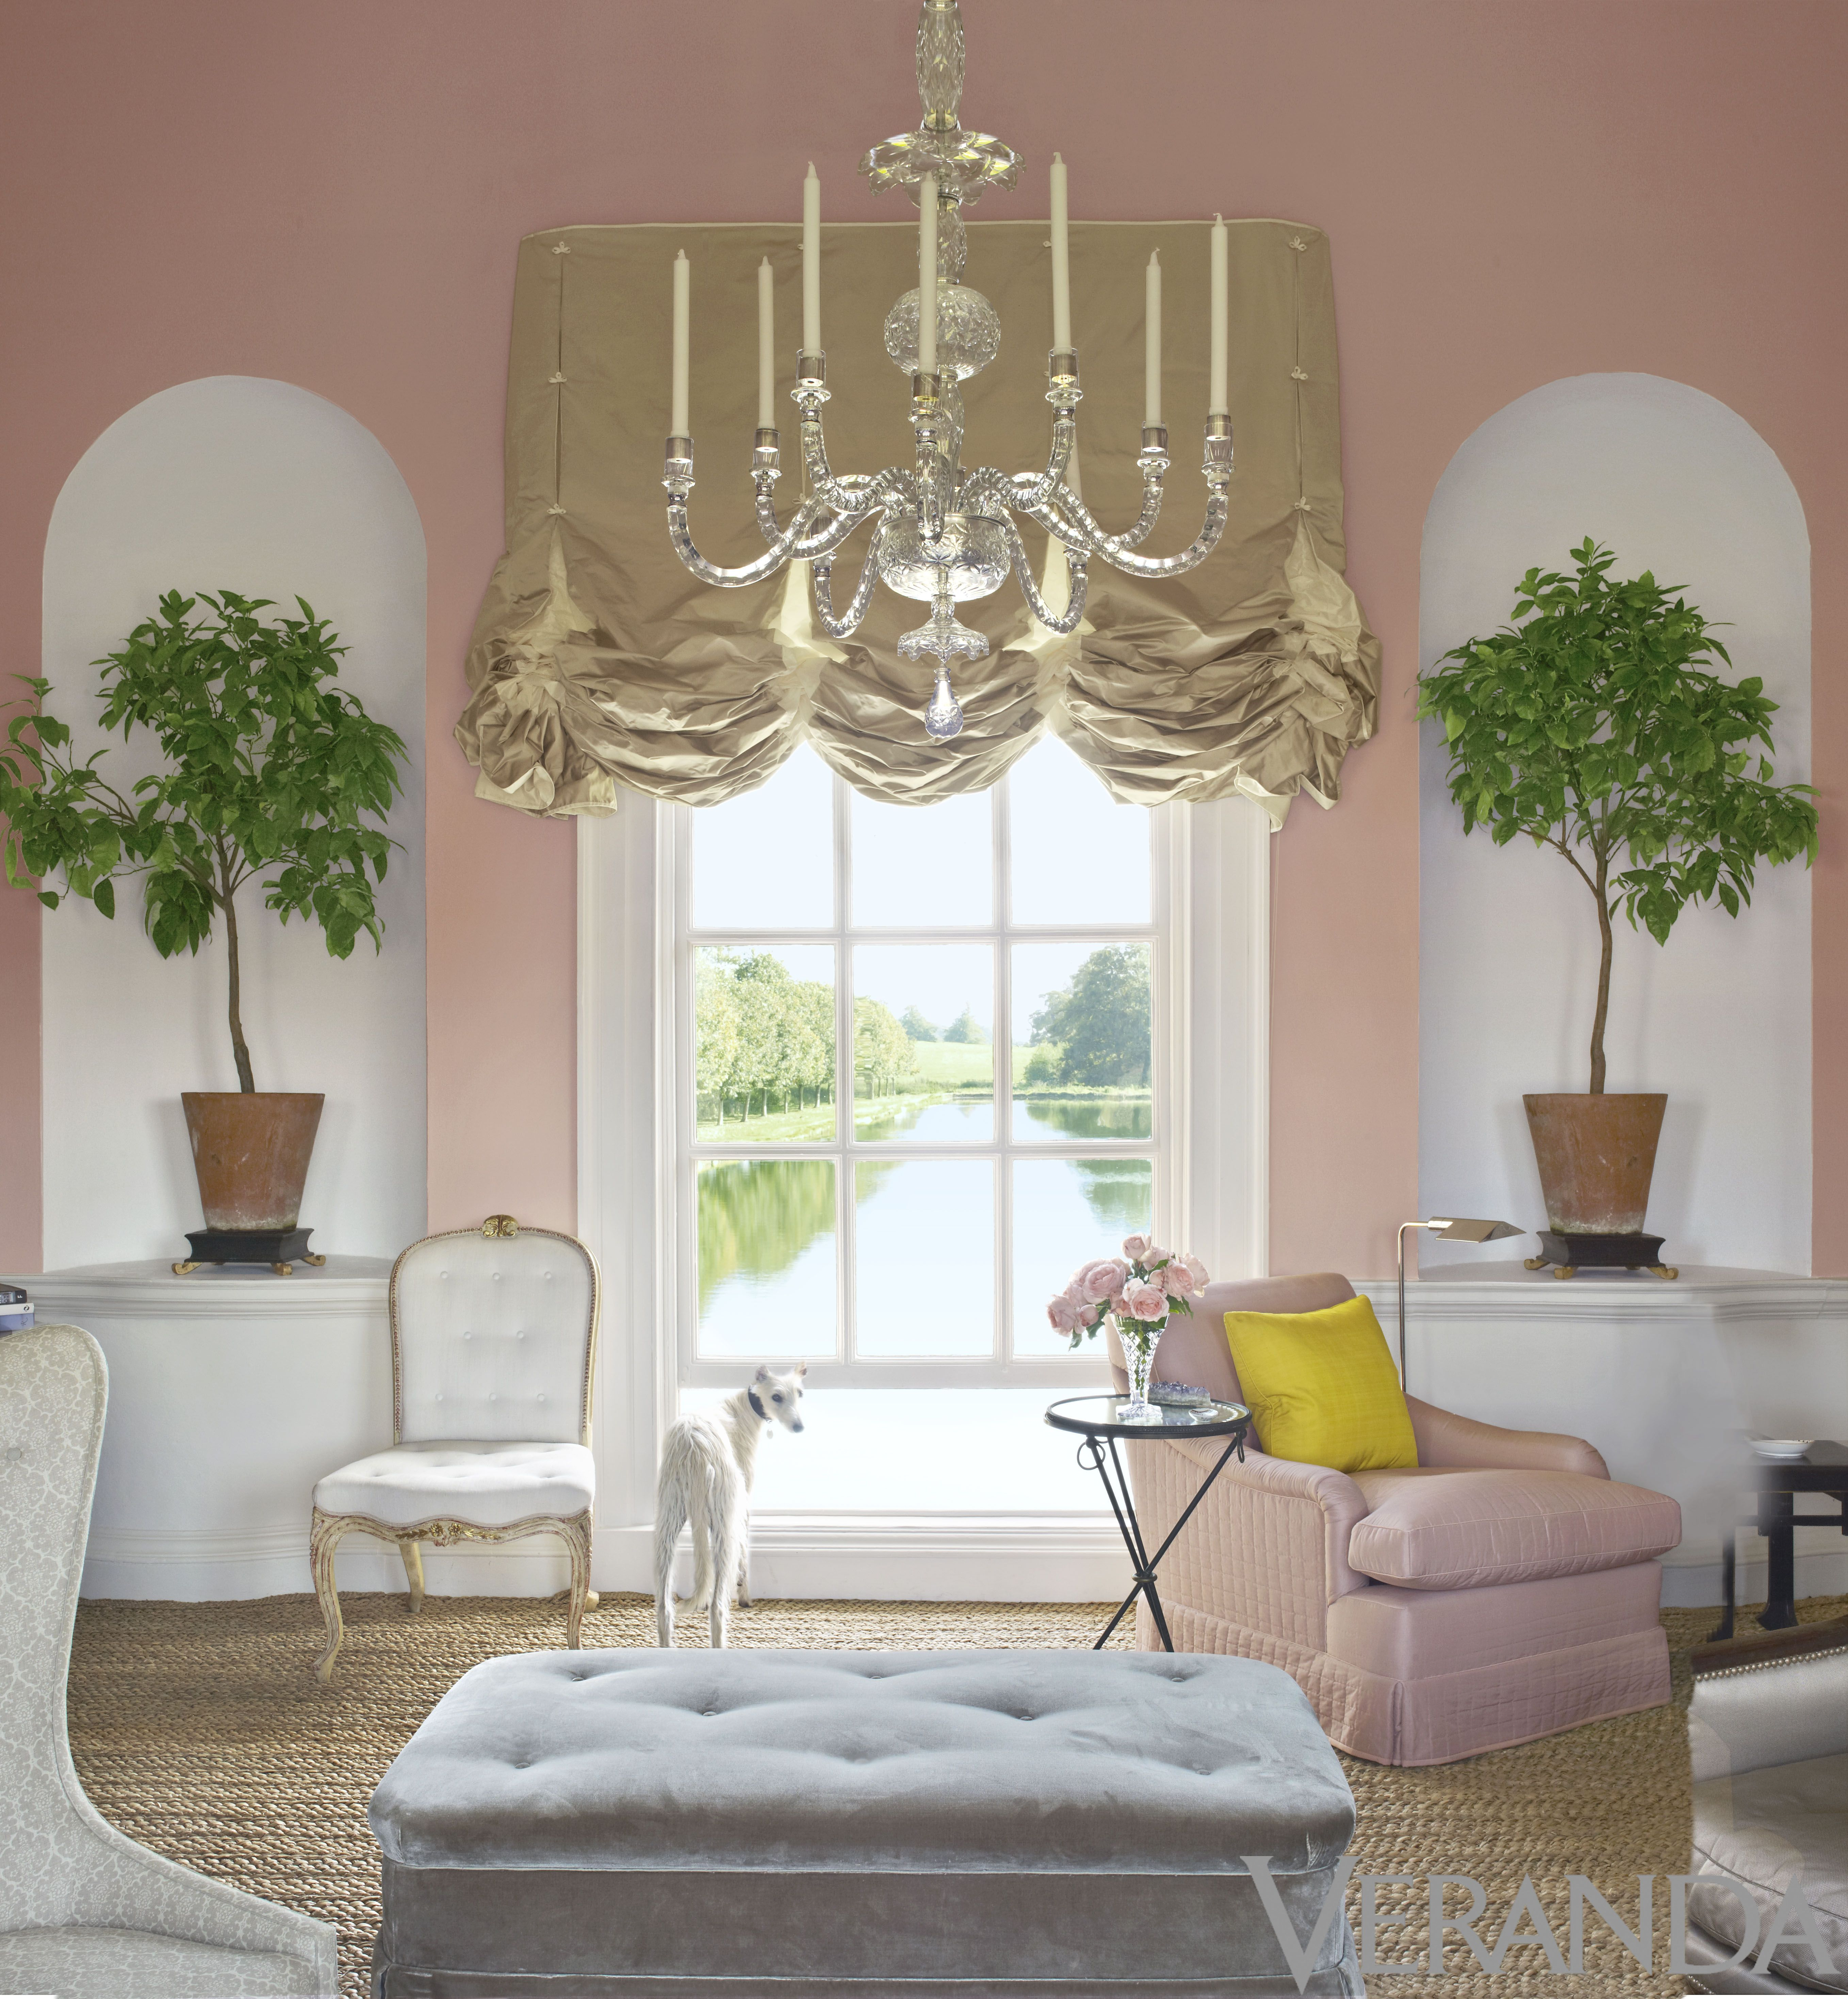 Room of the Day: the symmetry of the greenery in the ... Designs Sketch Home Ofveranda on